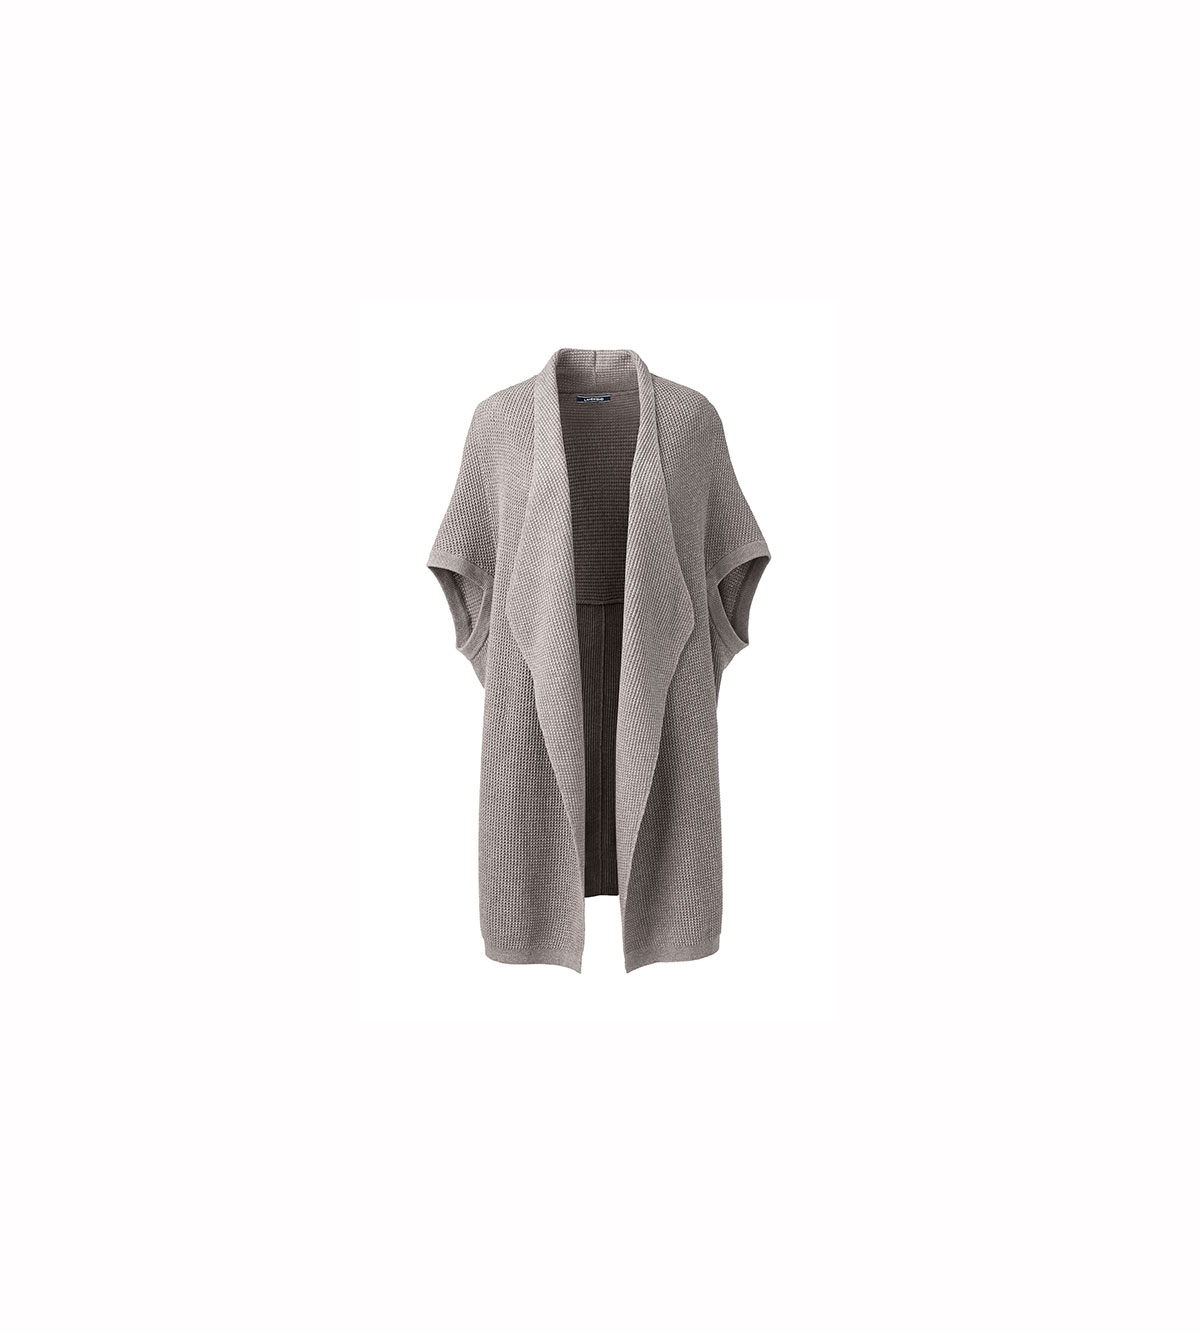 Lofty Elbow Sleeve Open Cardigan Sweater